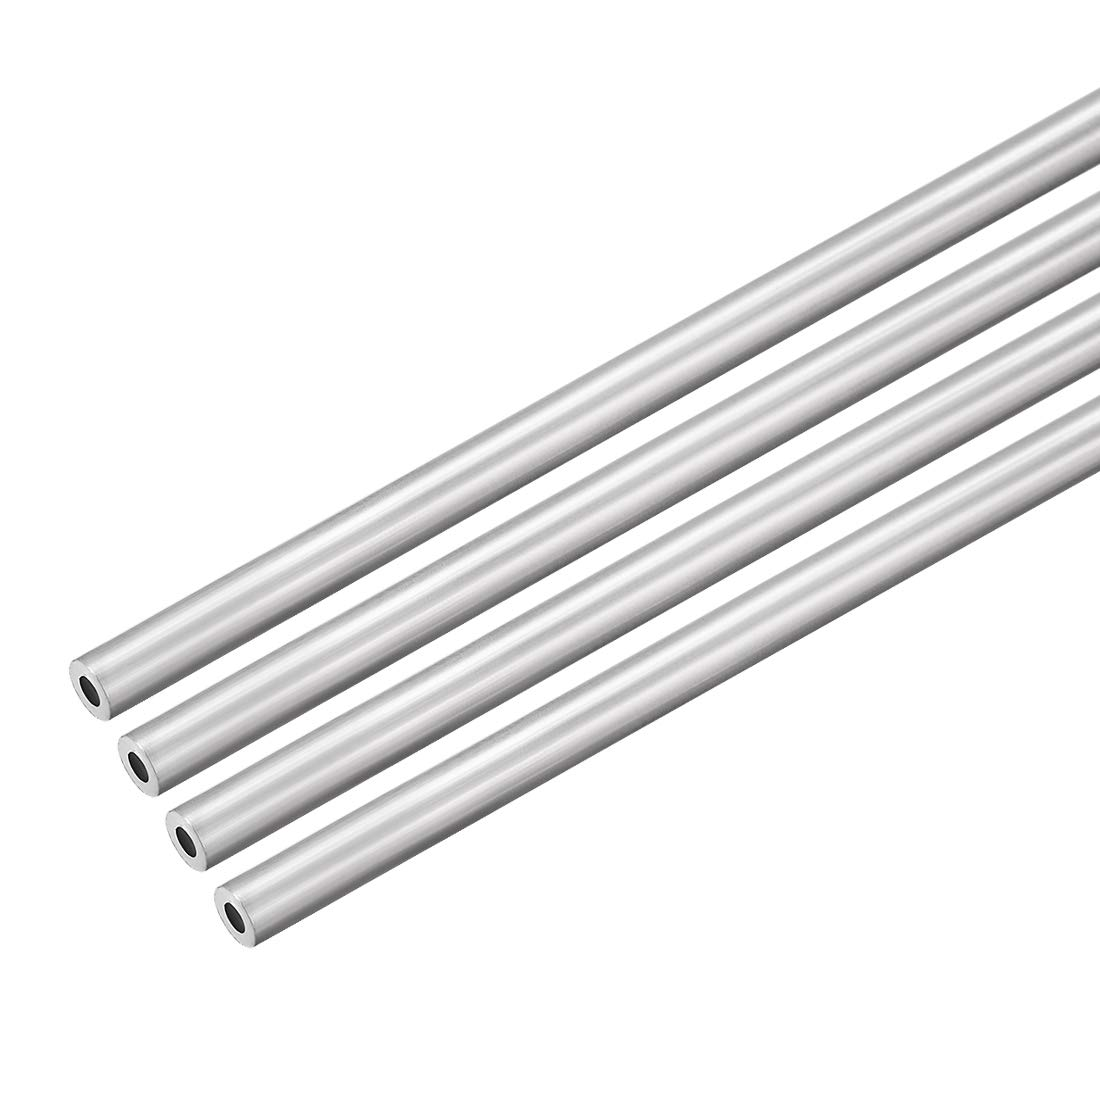 uxcell 4Pcs 6063 Seamless Aluminum Round Straight Tubing Tube 1 Feet Length 0.117 Inches ID 0.195 Inches OD